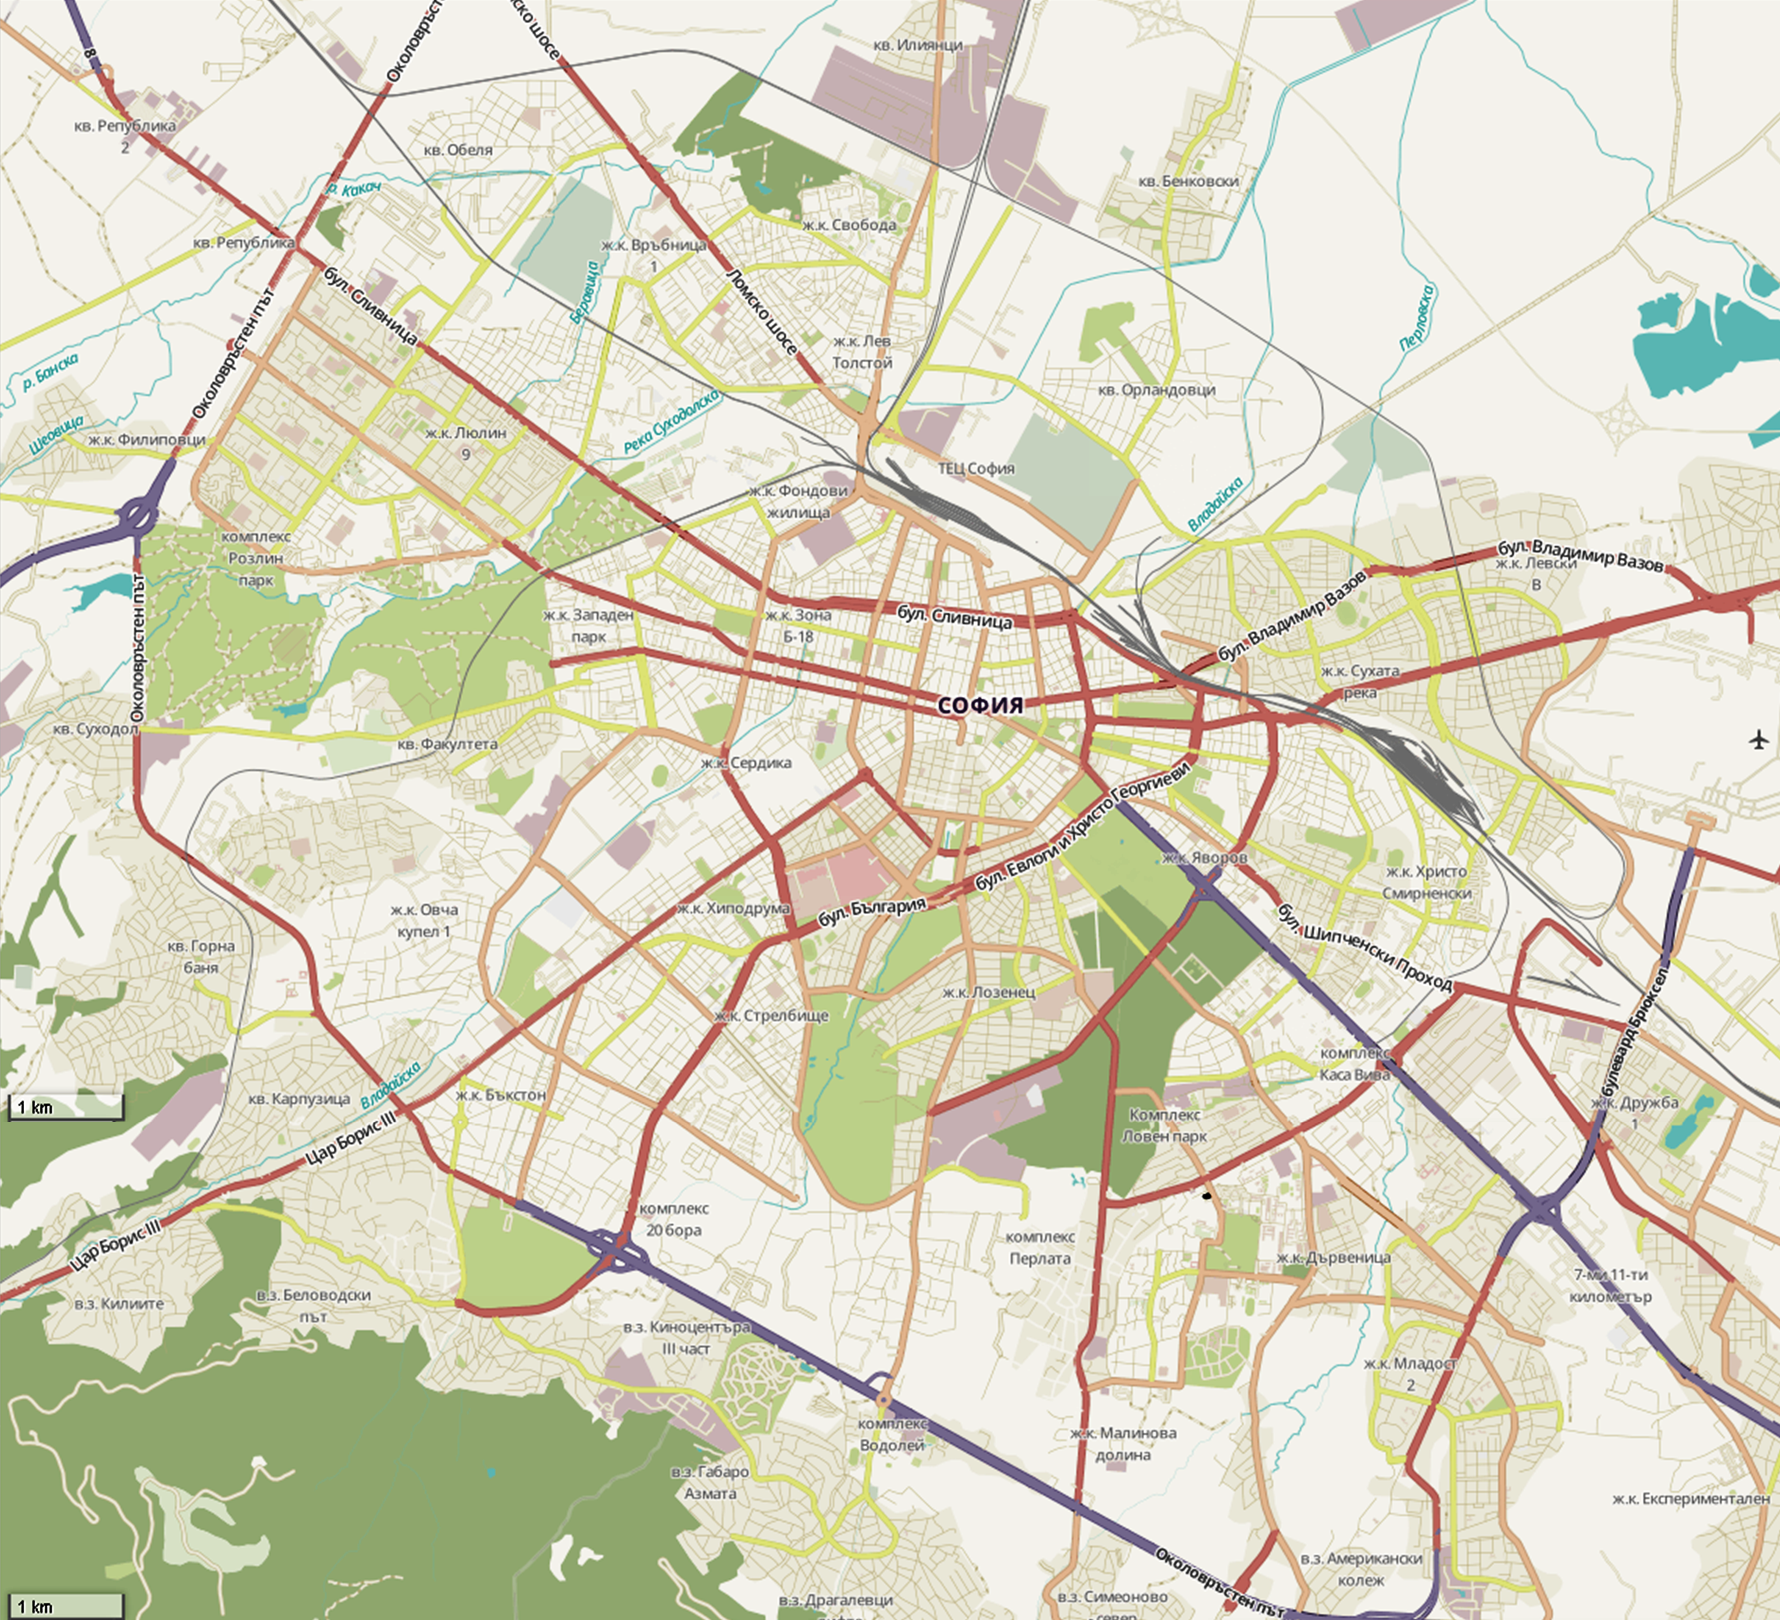 ملف:Sofia Full City Map.png.